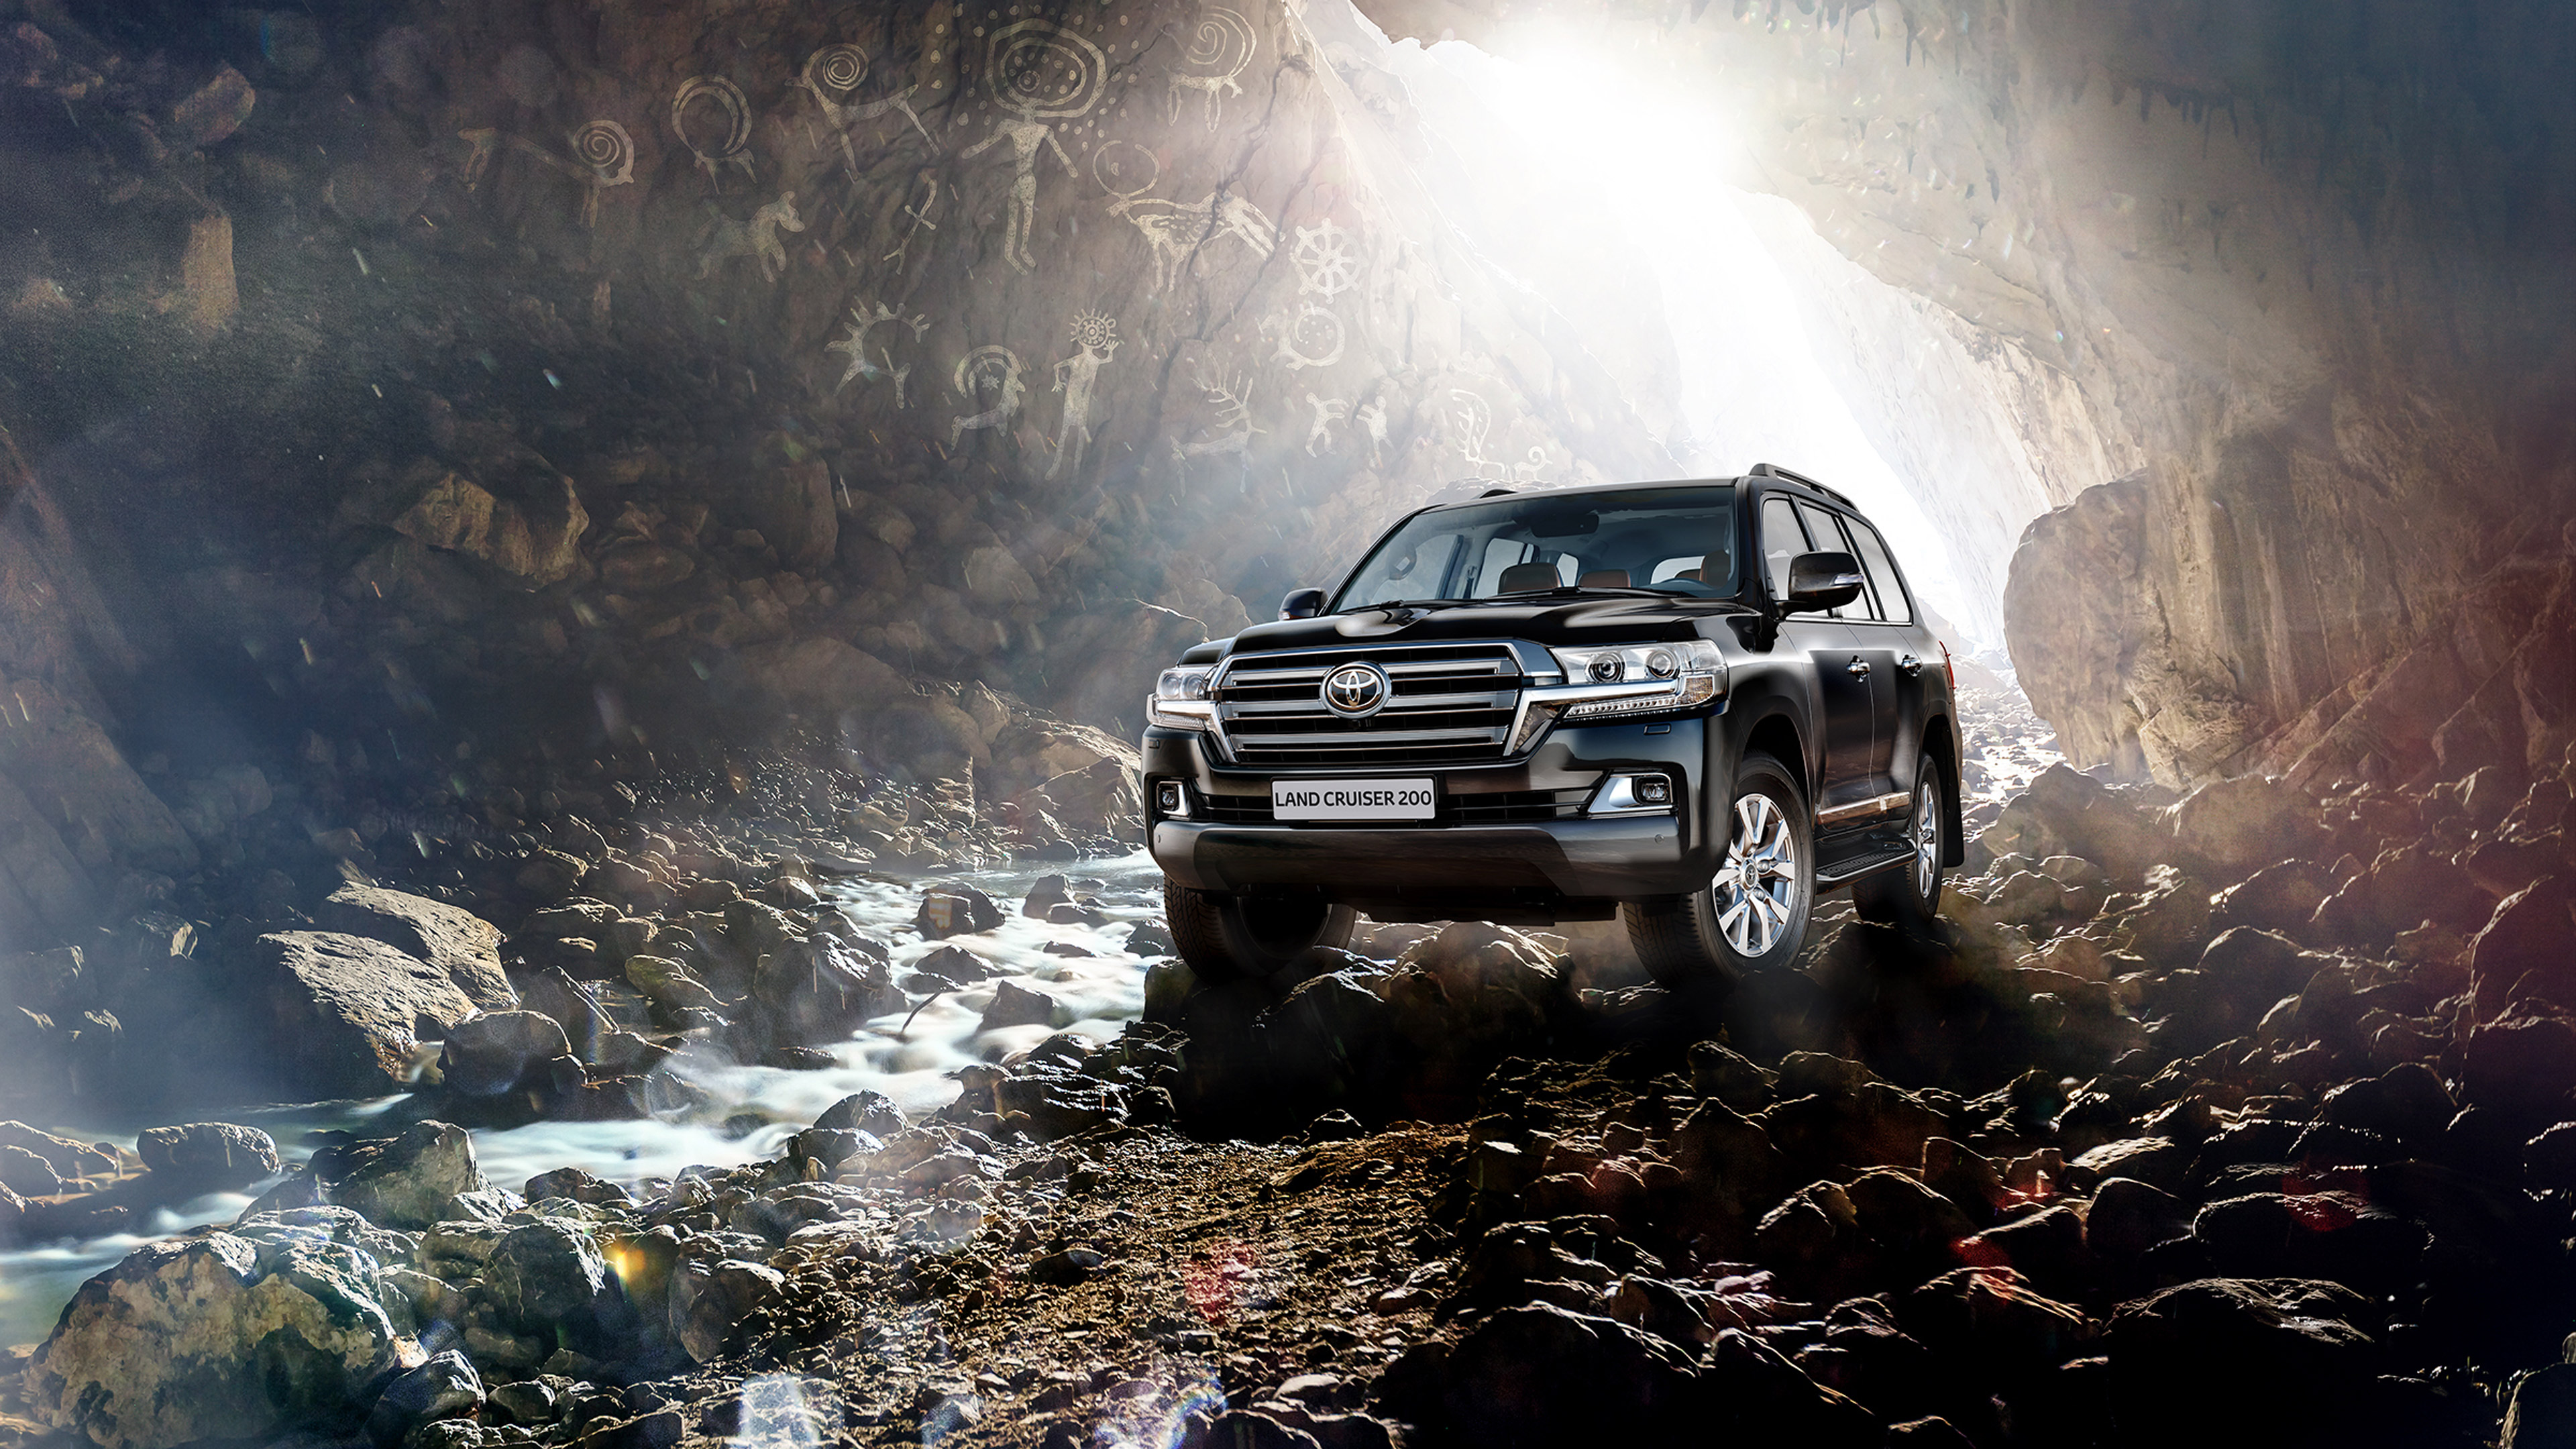 Land Cruiser 200, HD Cars, 4k Wallpapers, Images